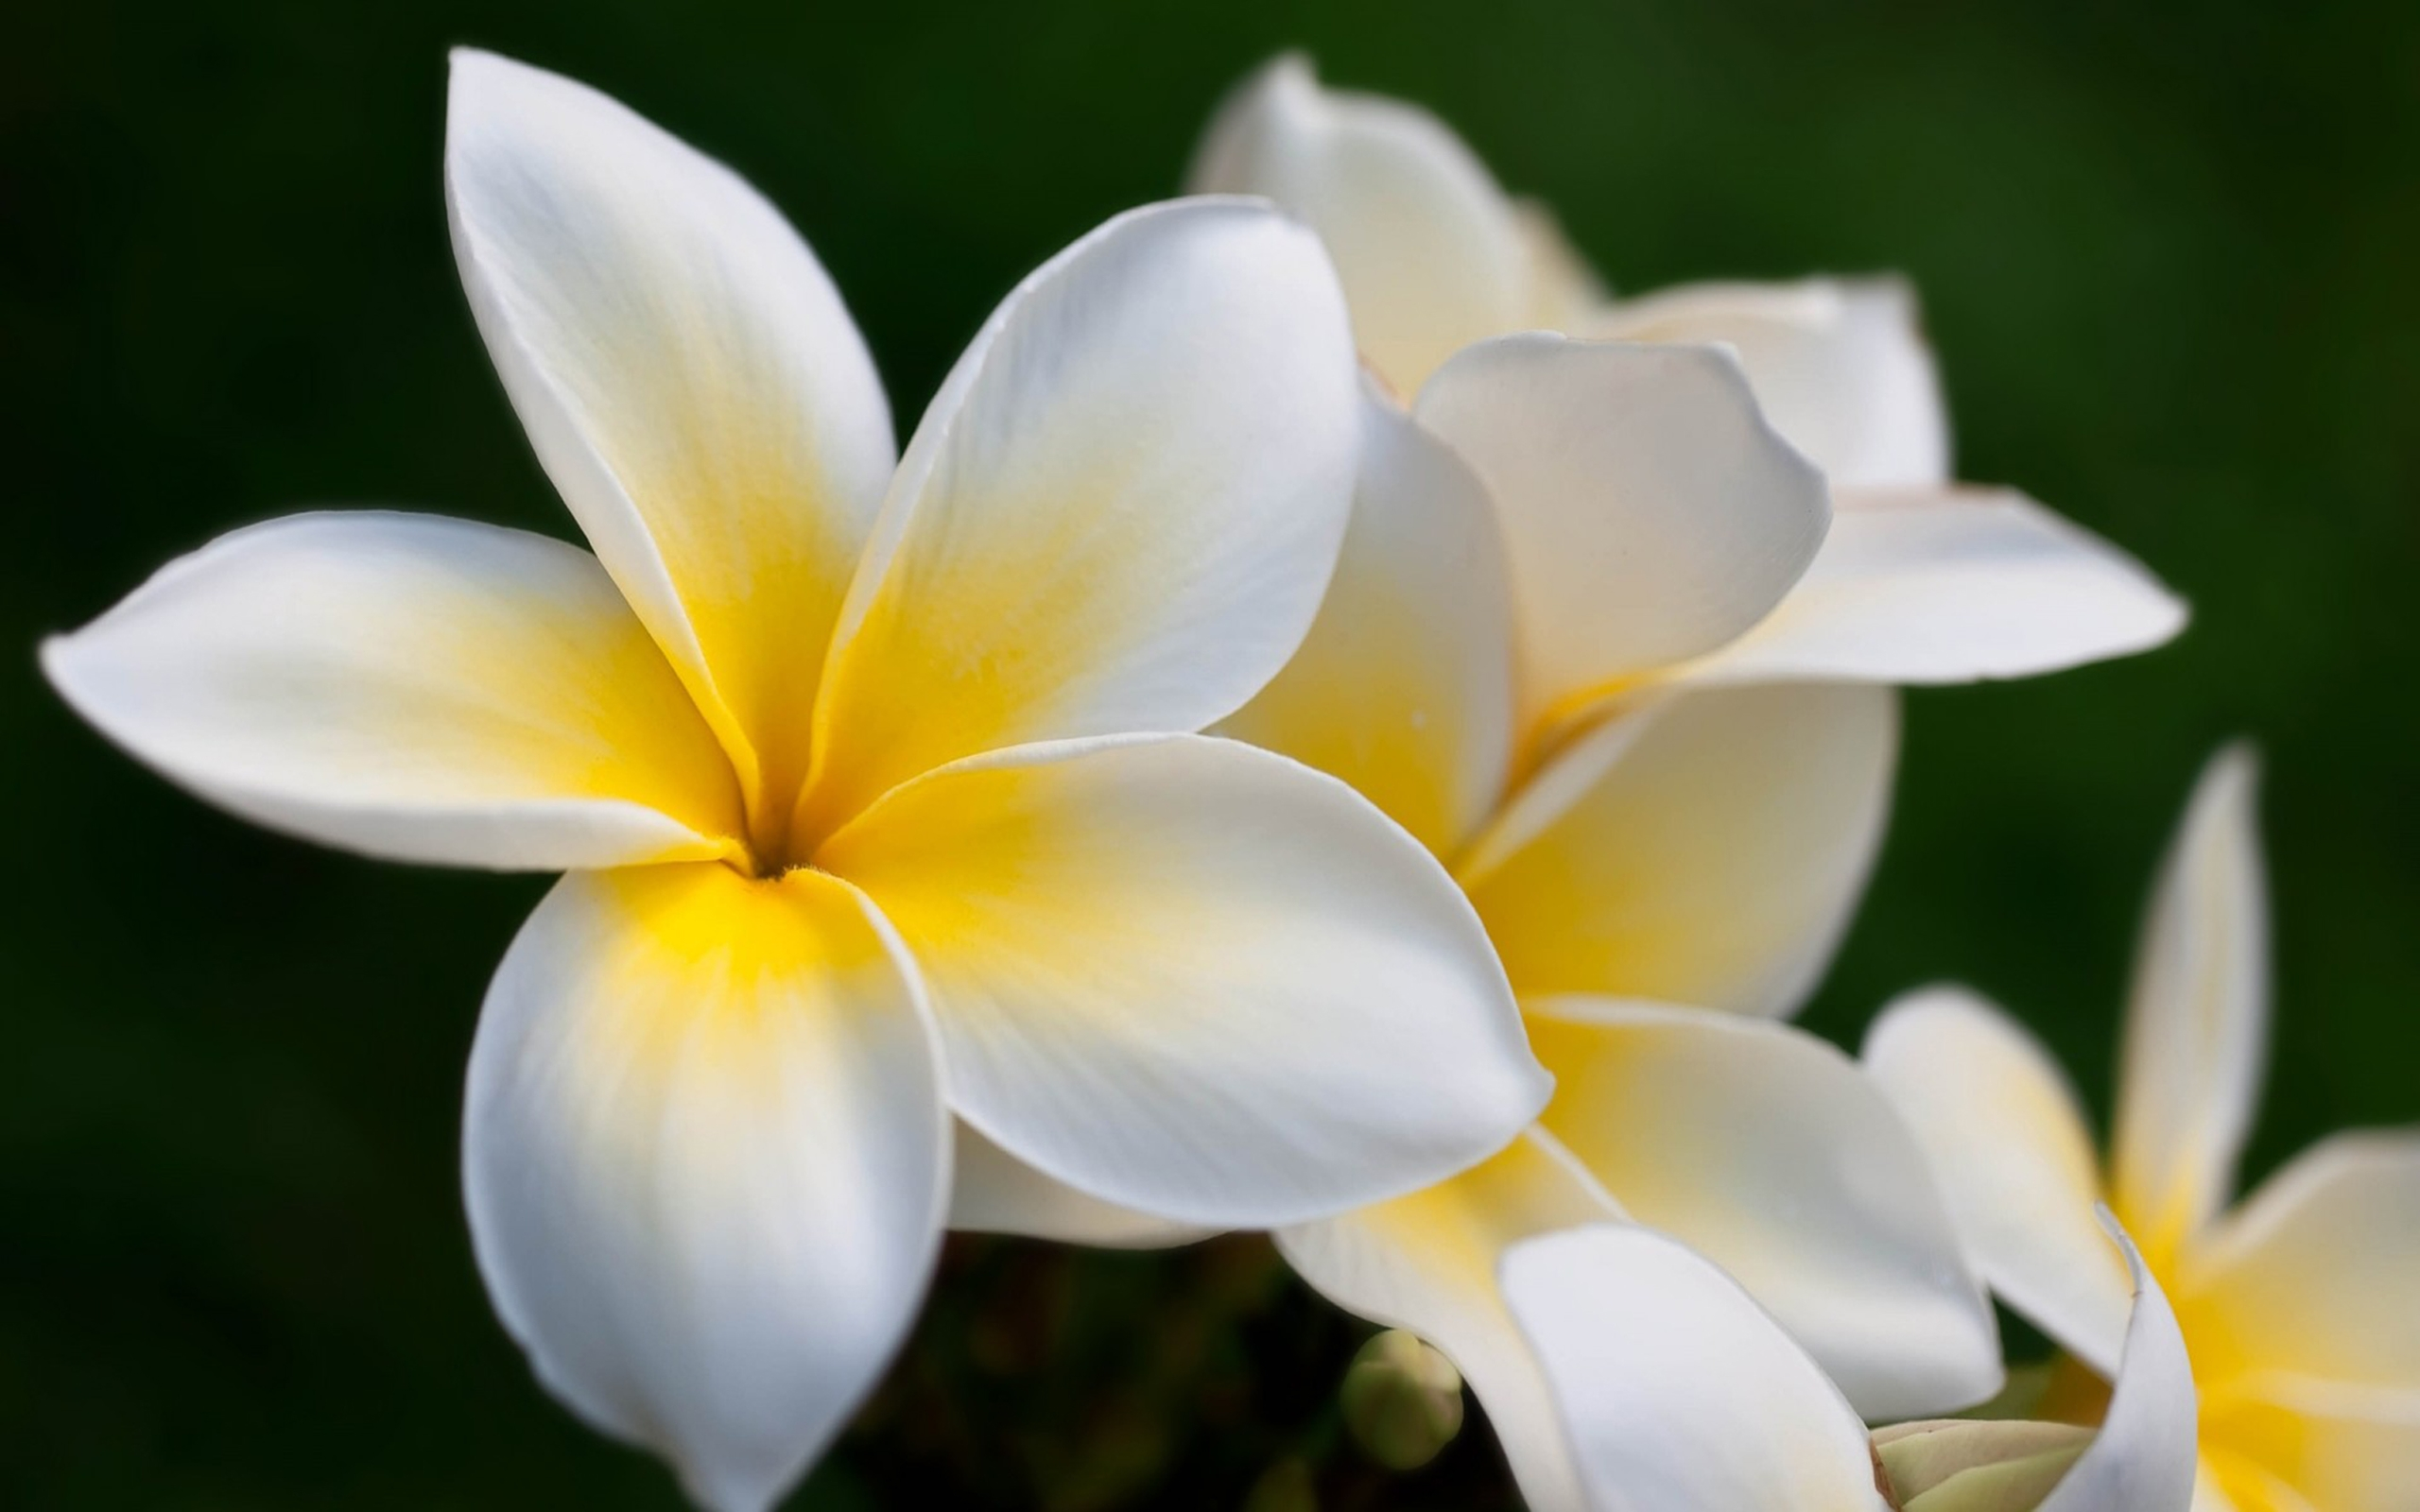 Natural Hd Wallpaper Download For Android Plumeria Flower Hd Wallpaper 581775 Wallpapers13 Com